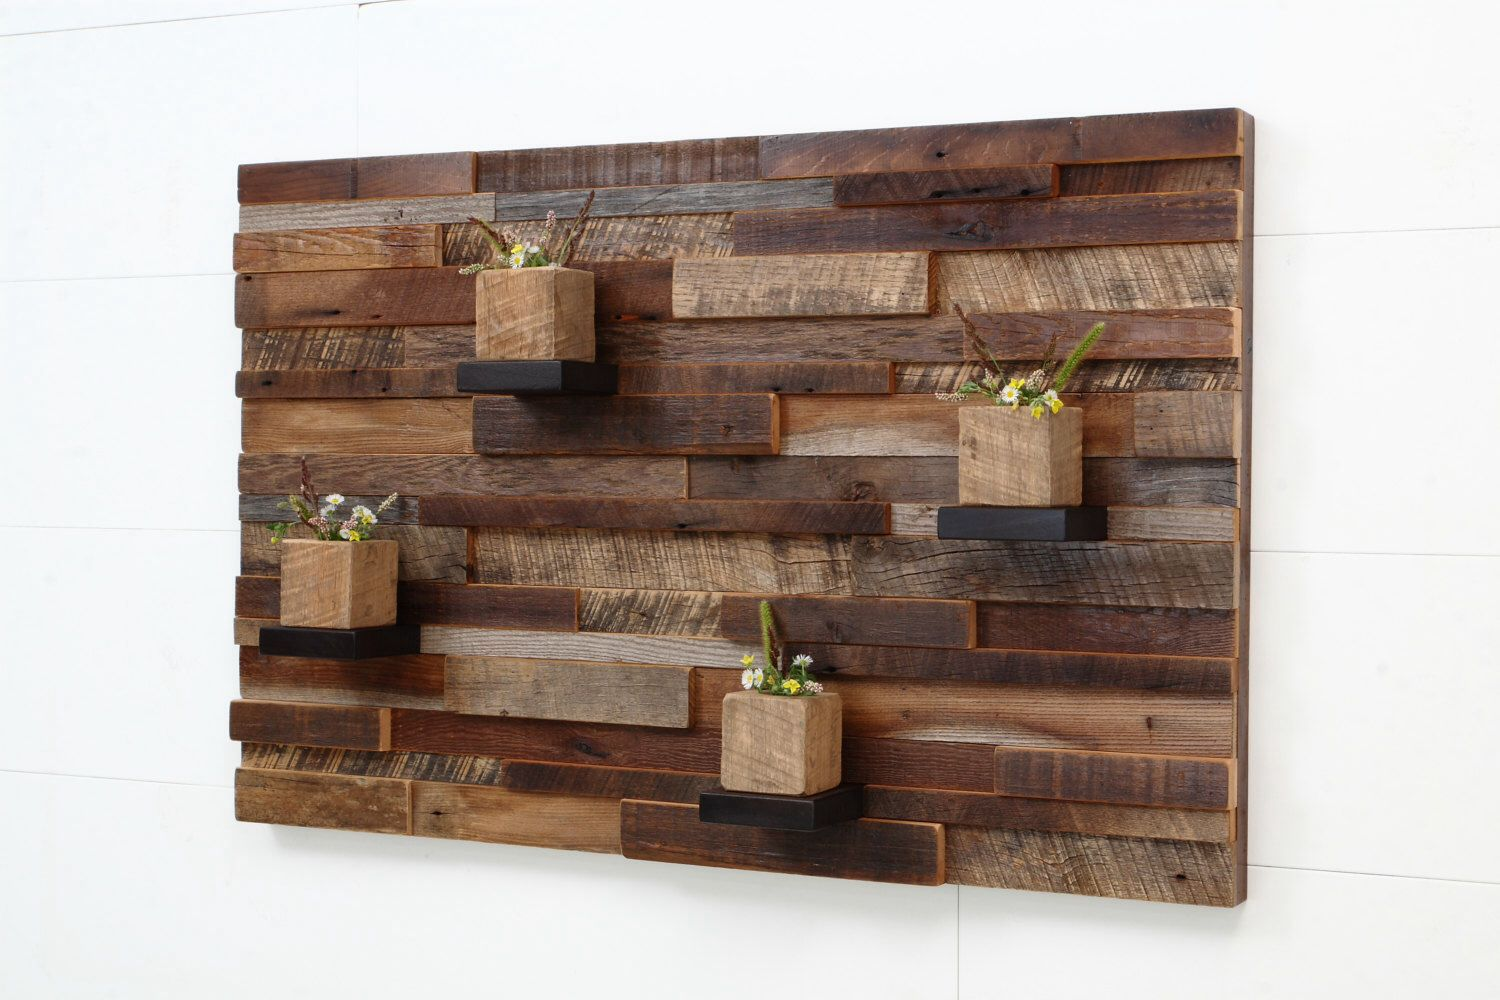 "Reclaimed wood wall art 37""x24""x5"" by CarpenterCraig on Etsy https://www.etsy.com/listing/112234236/reclaimed-wood-wall-art-37x24x5"